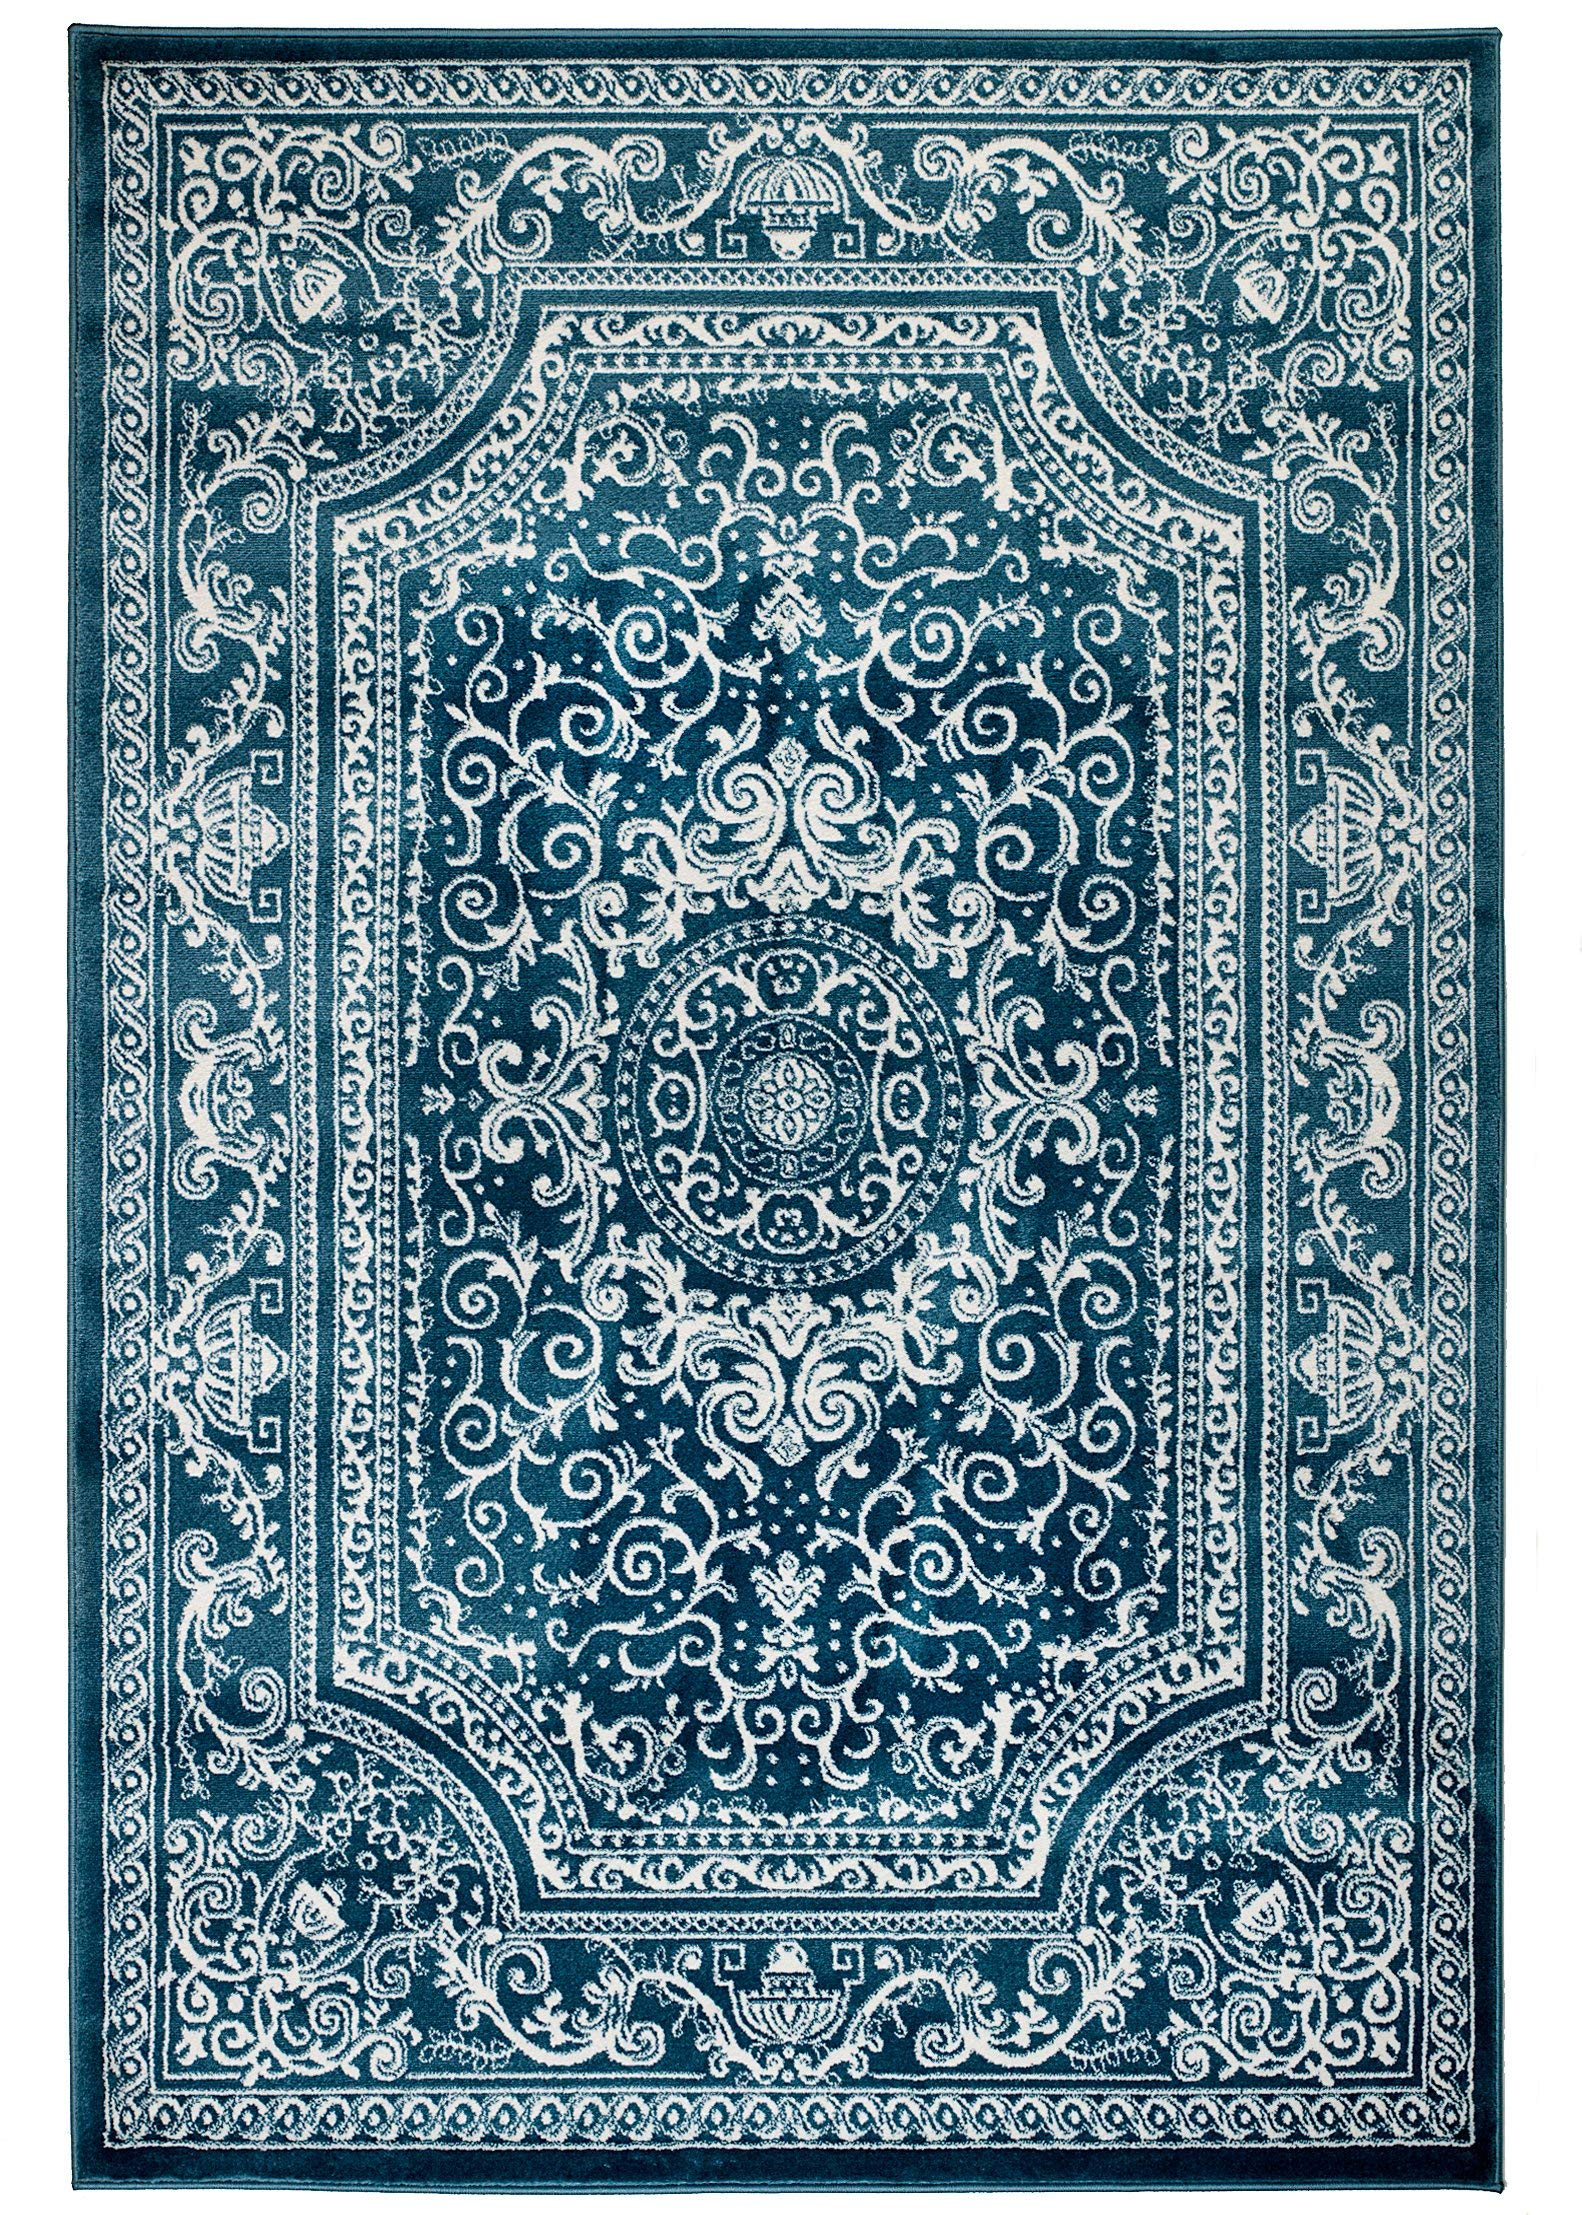 NEW Summit Elite S62 Blue and White rug Antique Style Tone   (22 inch x 35 inch SCATTER RUG DOOR MAT SIZE )